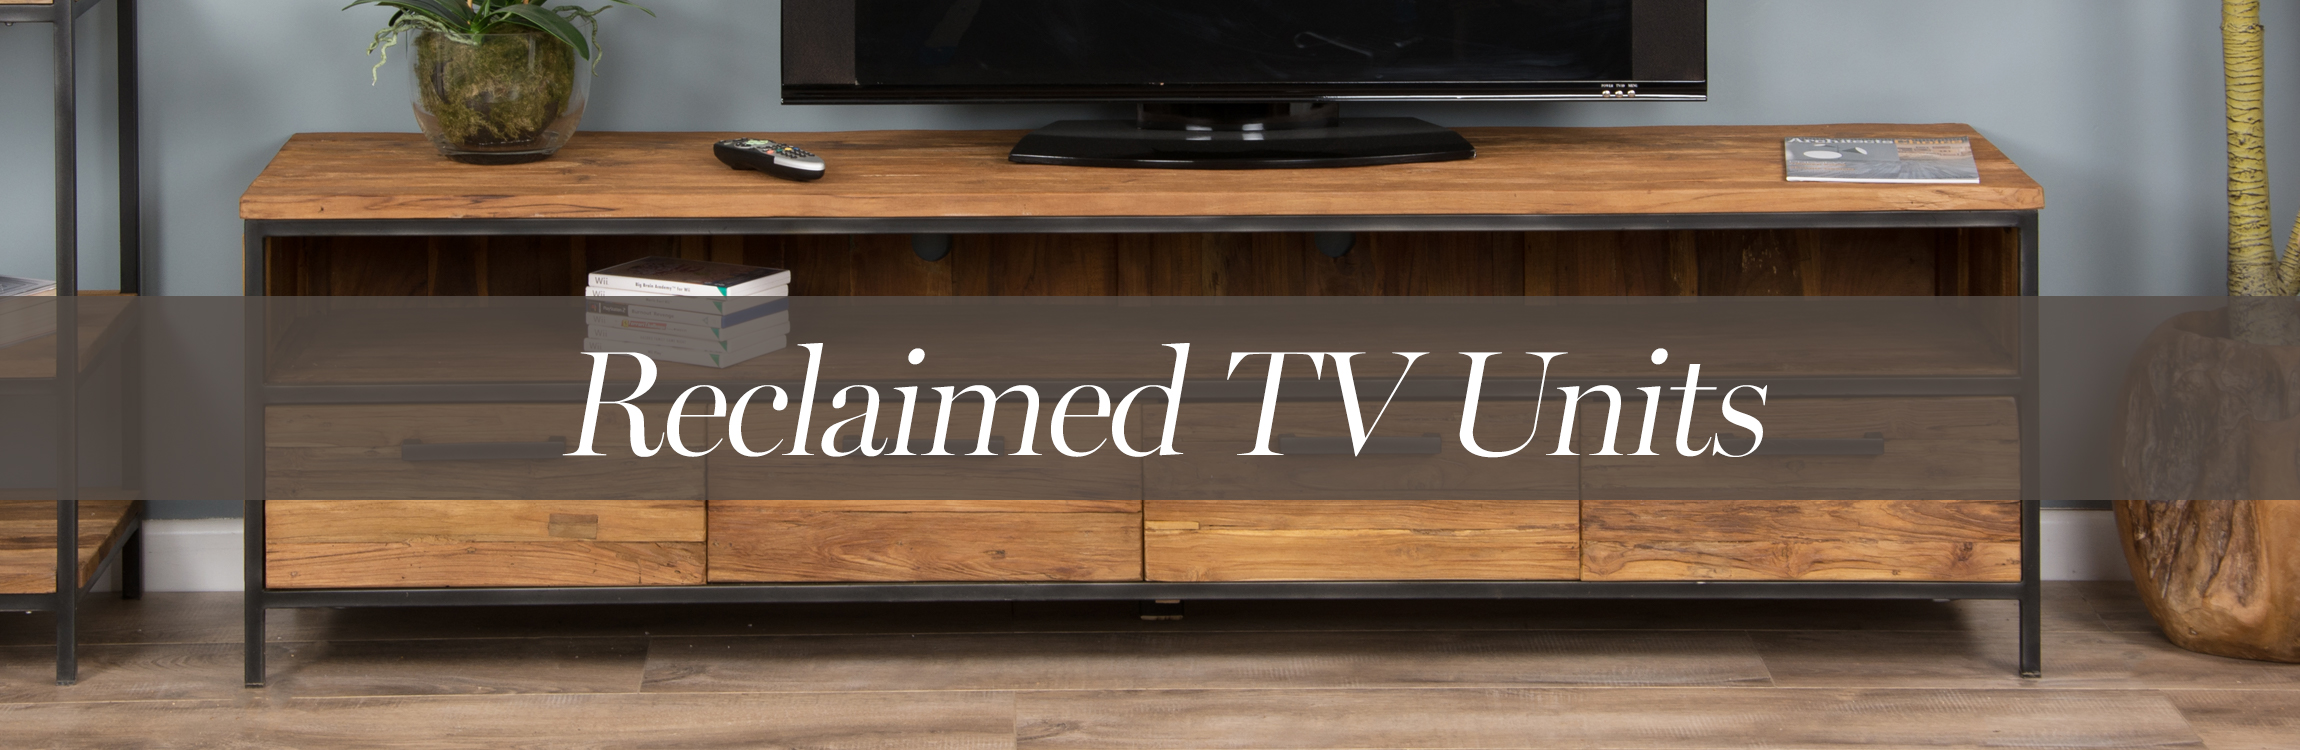 Reclaimed TV units